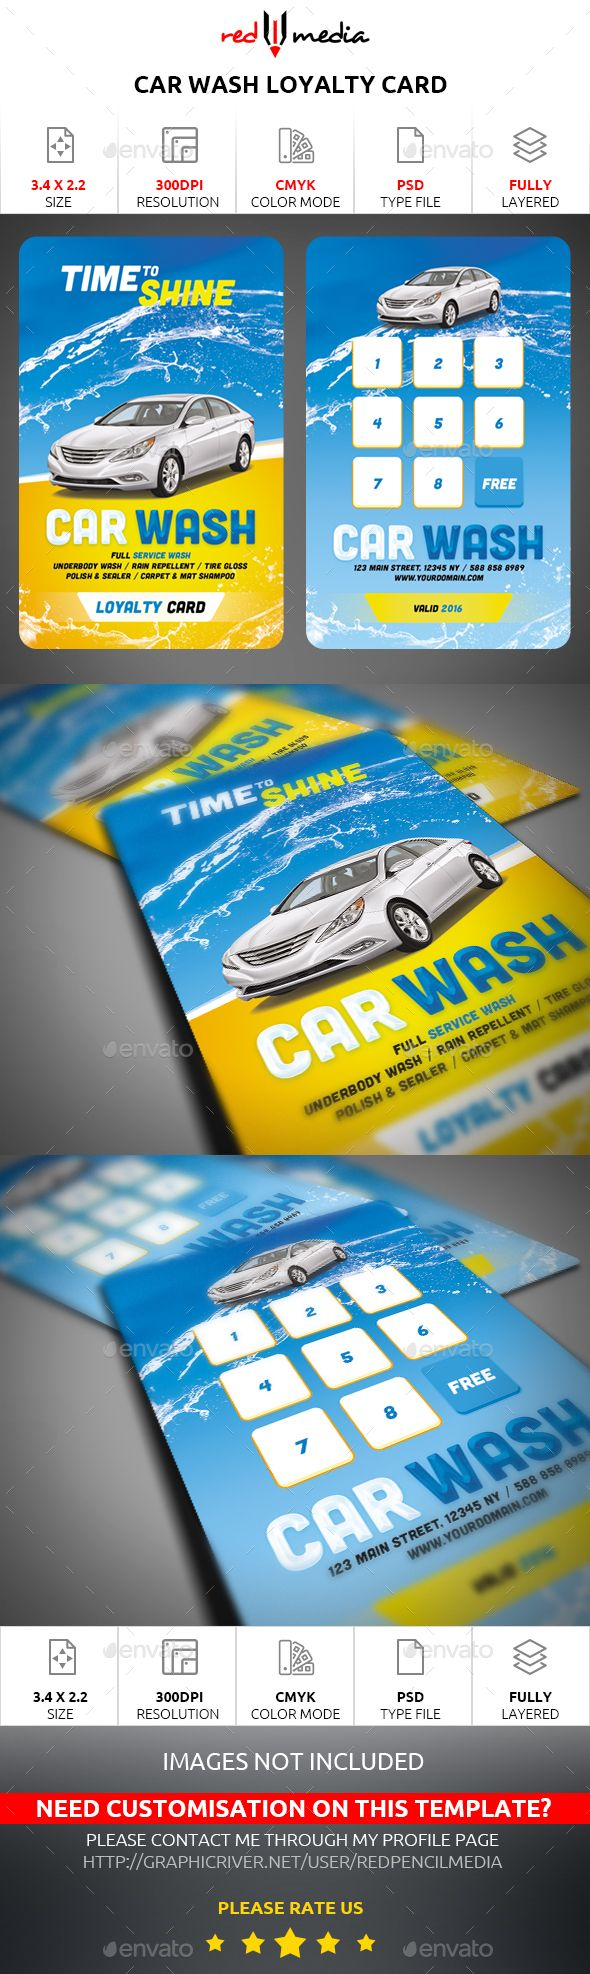 Car Wash Loyalty Card Car Wash Loyalty Card Template Car Wash Business